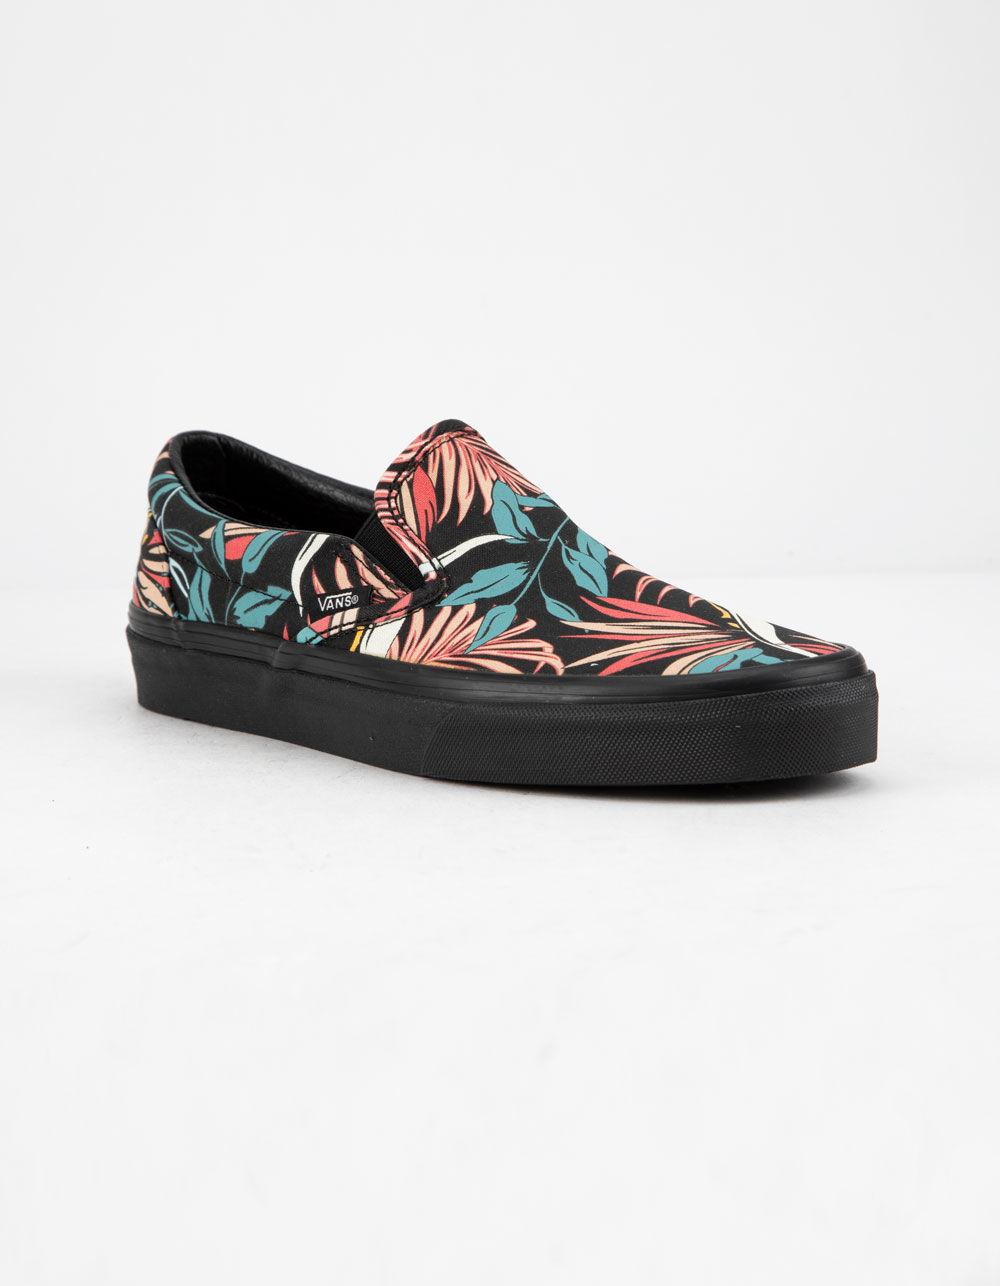 21b0cc3586 Lyst - Vans California Floral Classic Slip-on Womens Shoes in Black